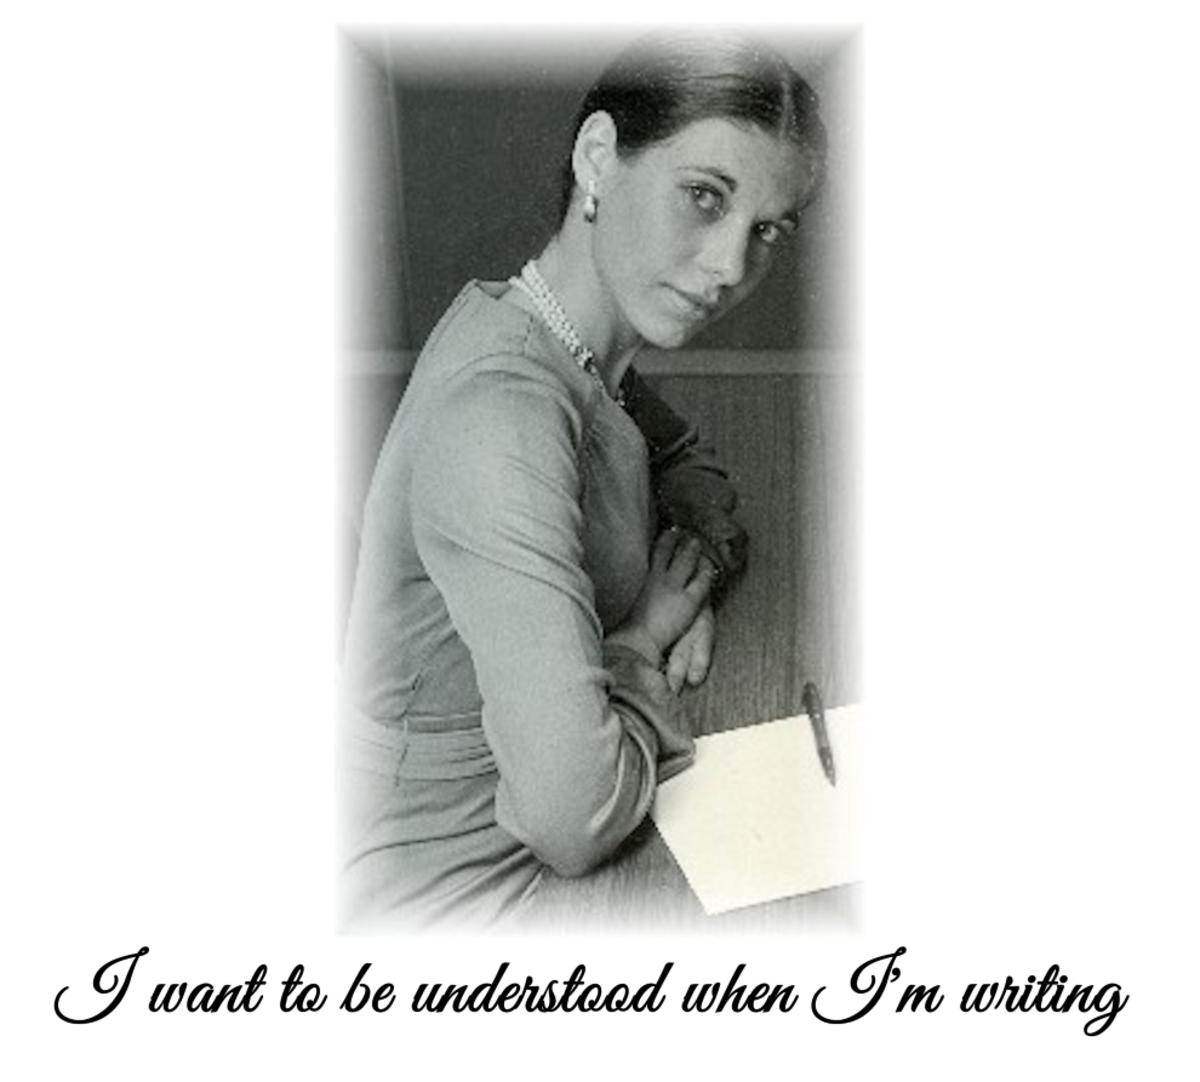 I want my writing to be understood!